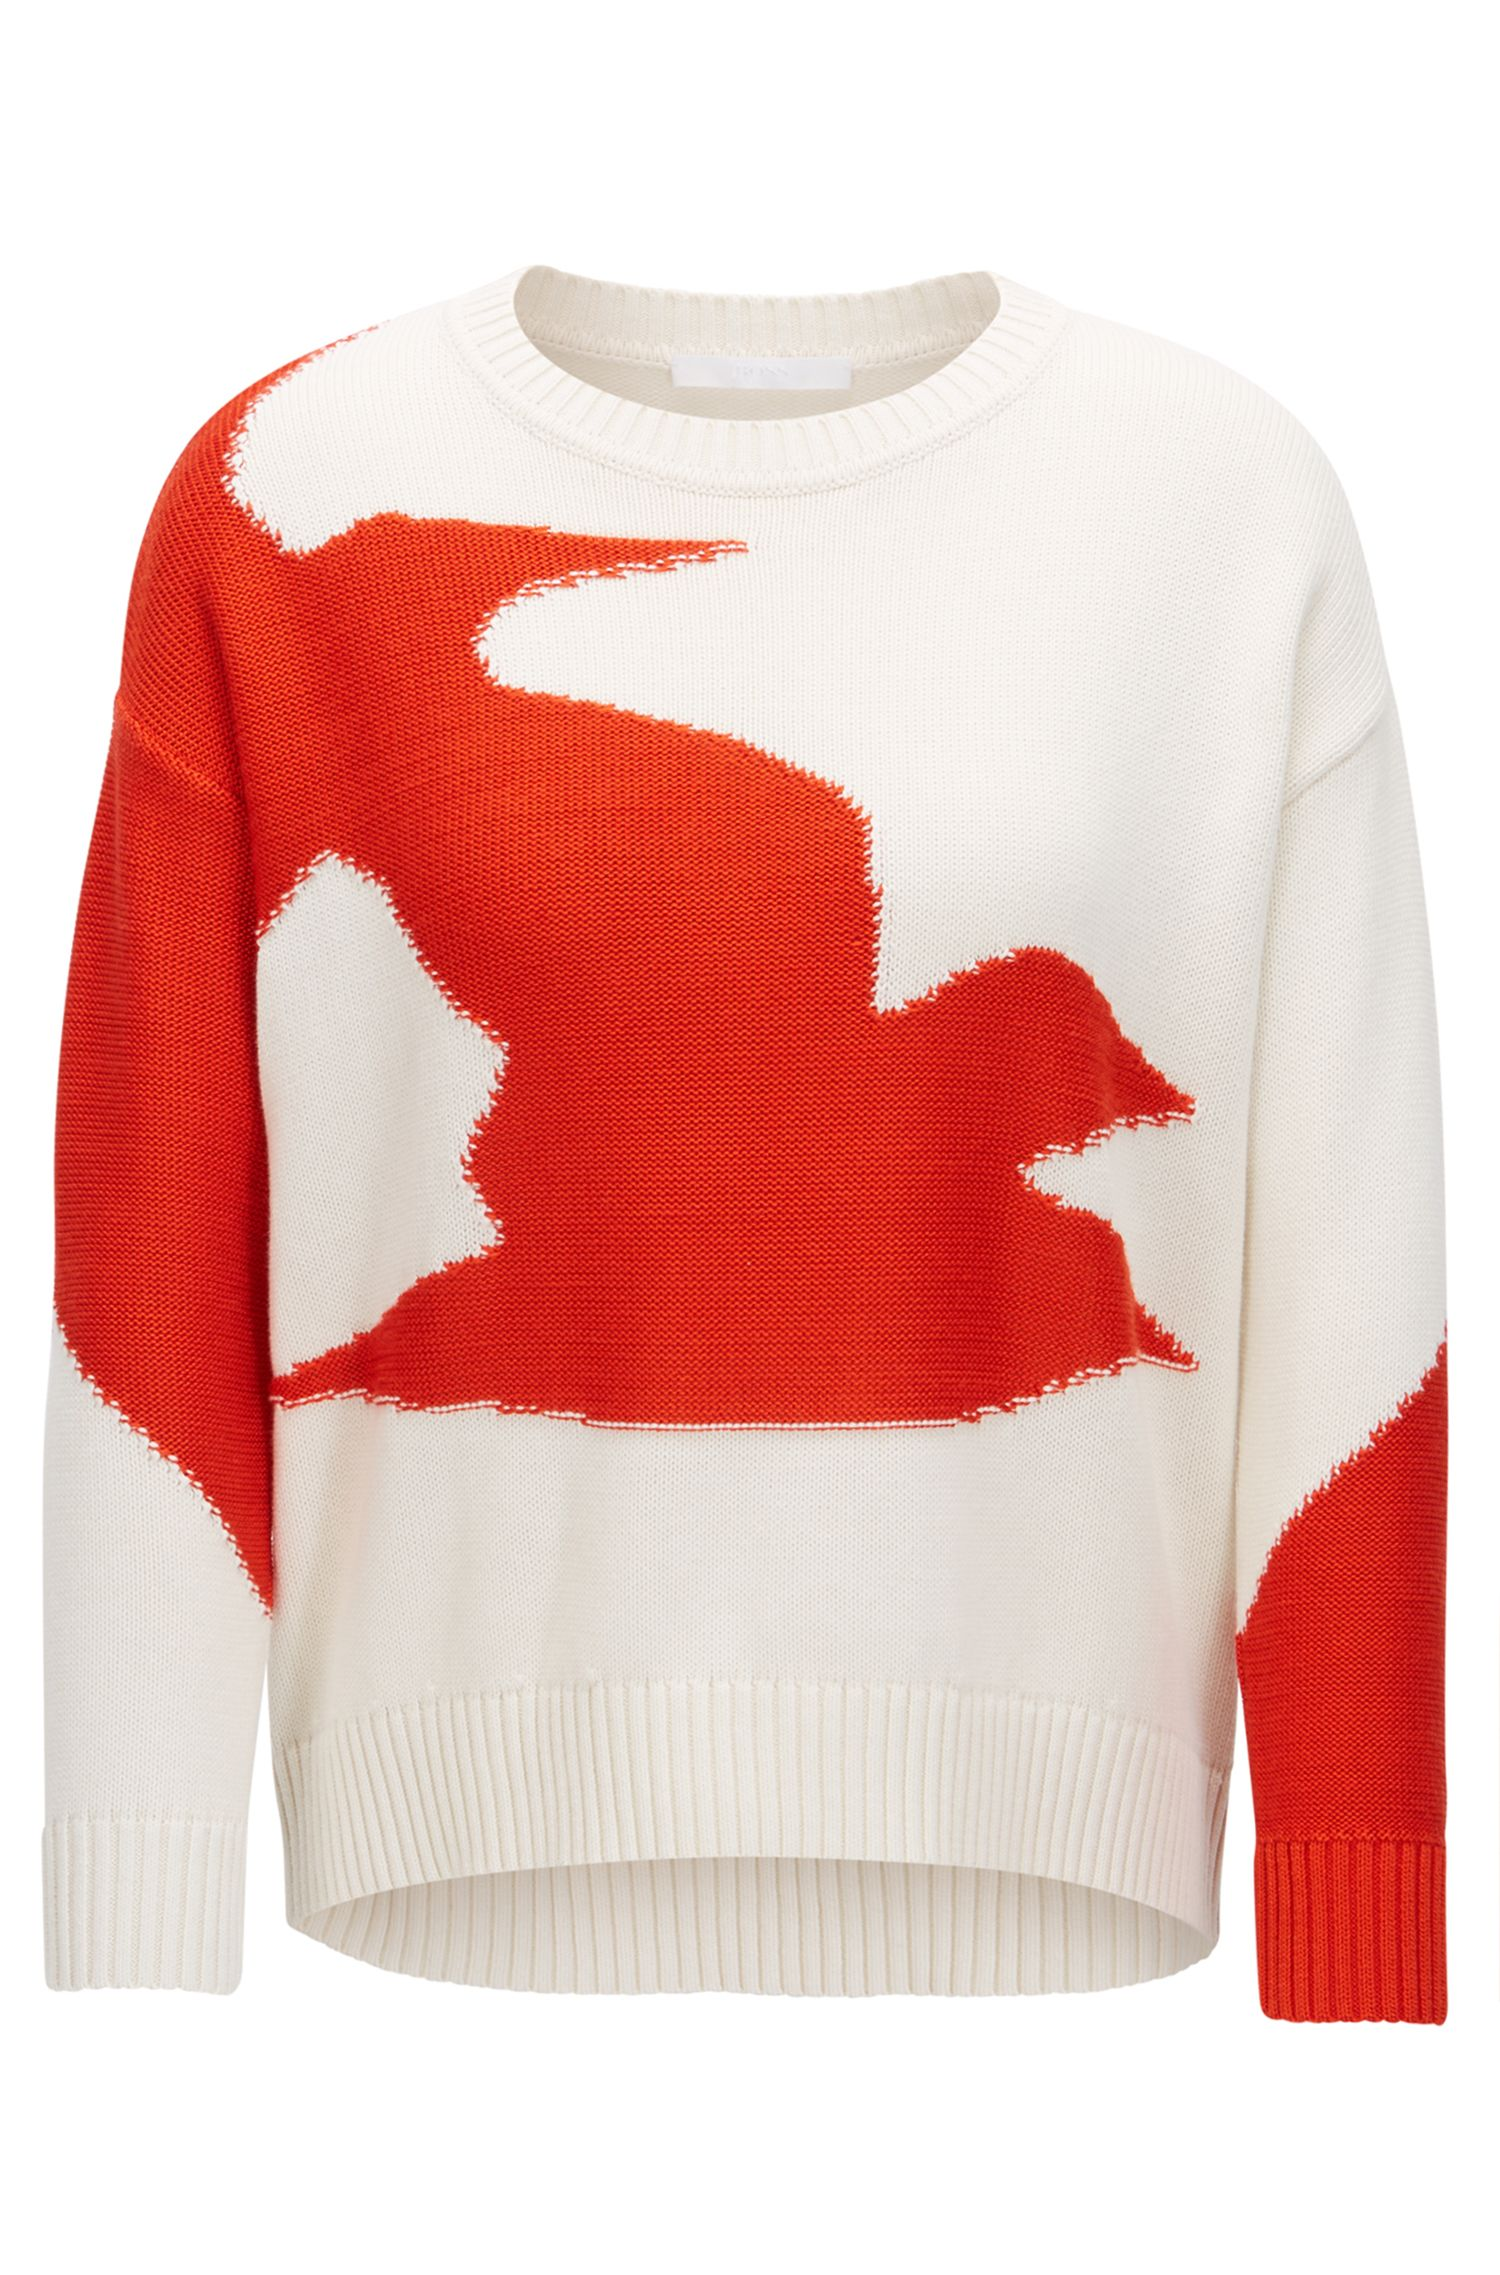 Cotton-blend sweater with seagull intarsia